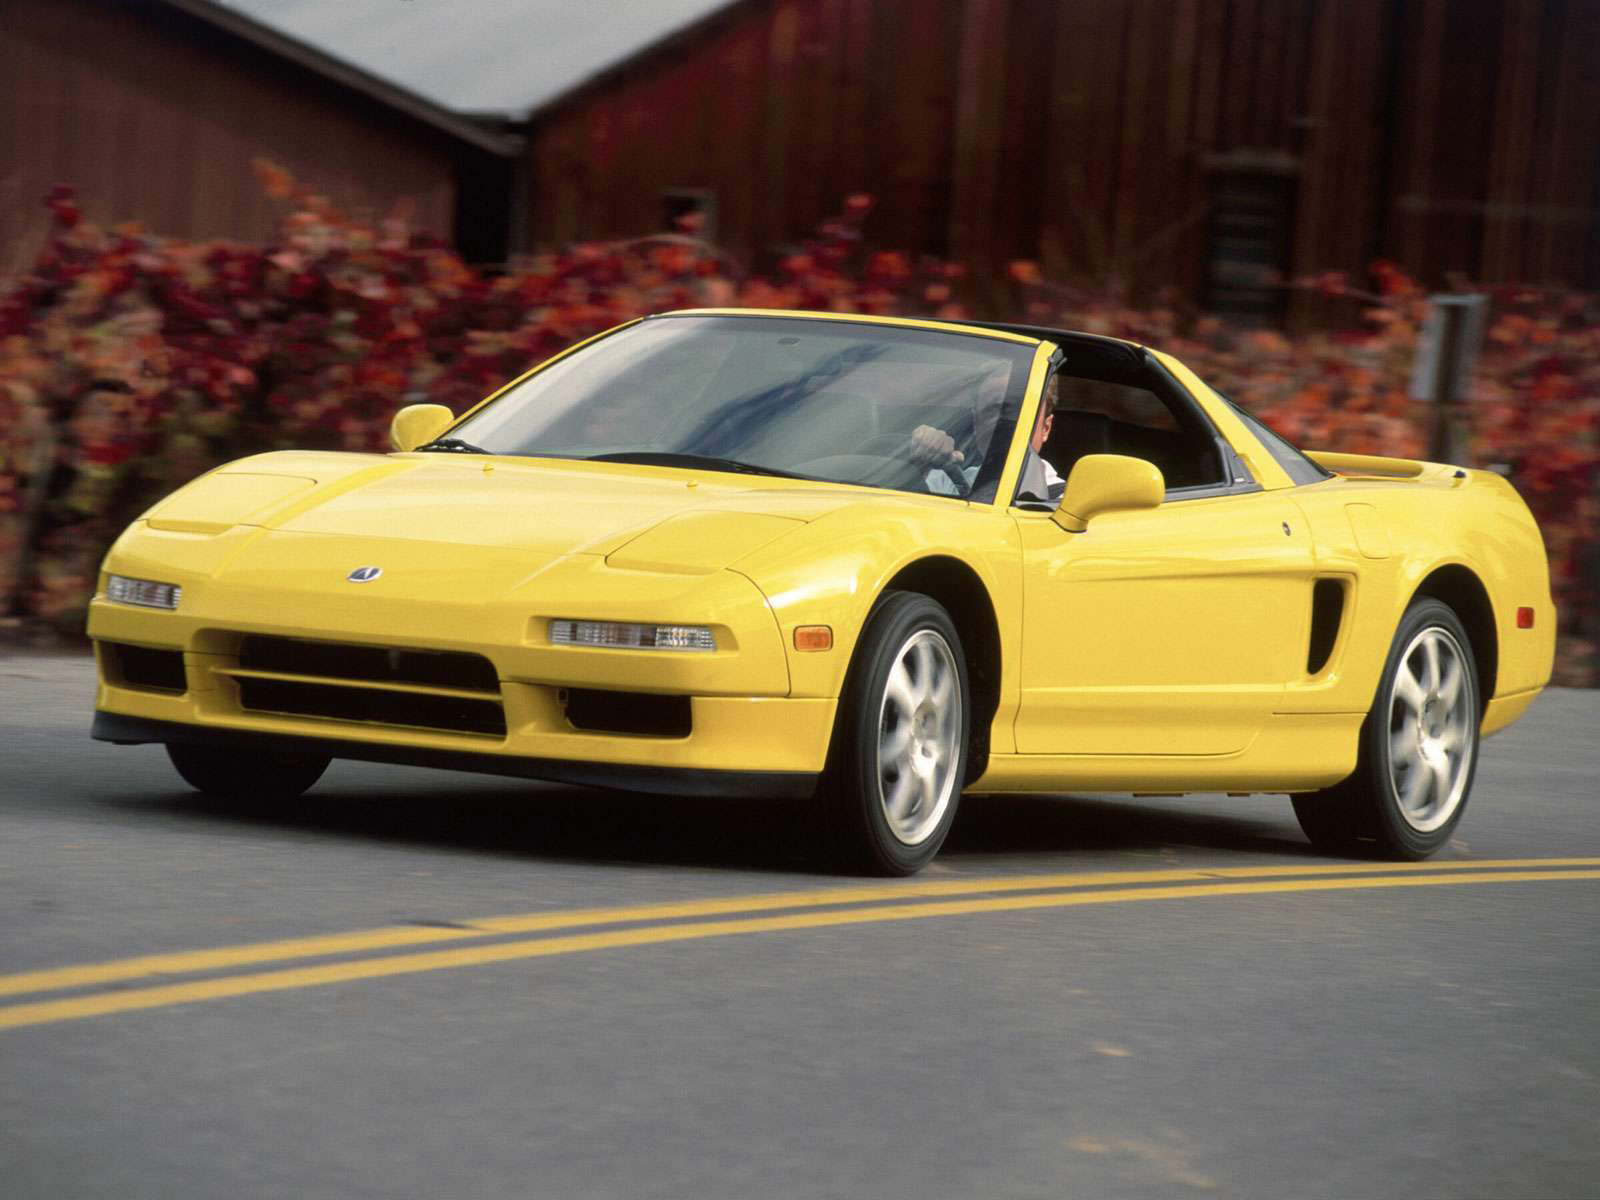 2001 acura nsx t car photos pictures wallpapers. Black Bedroom Furniture Sets. Home Design Ideas